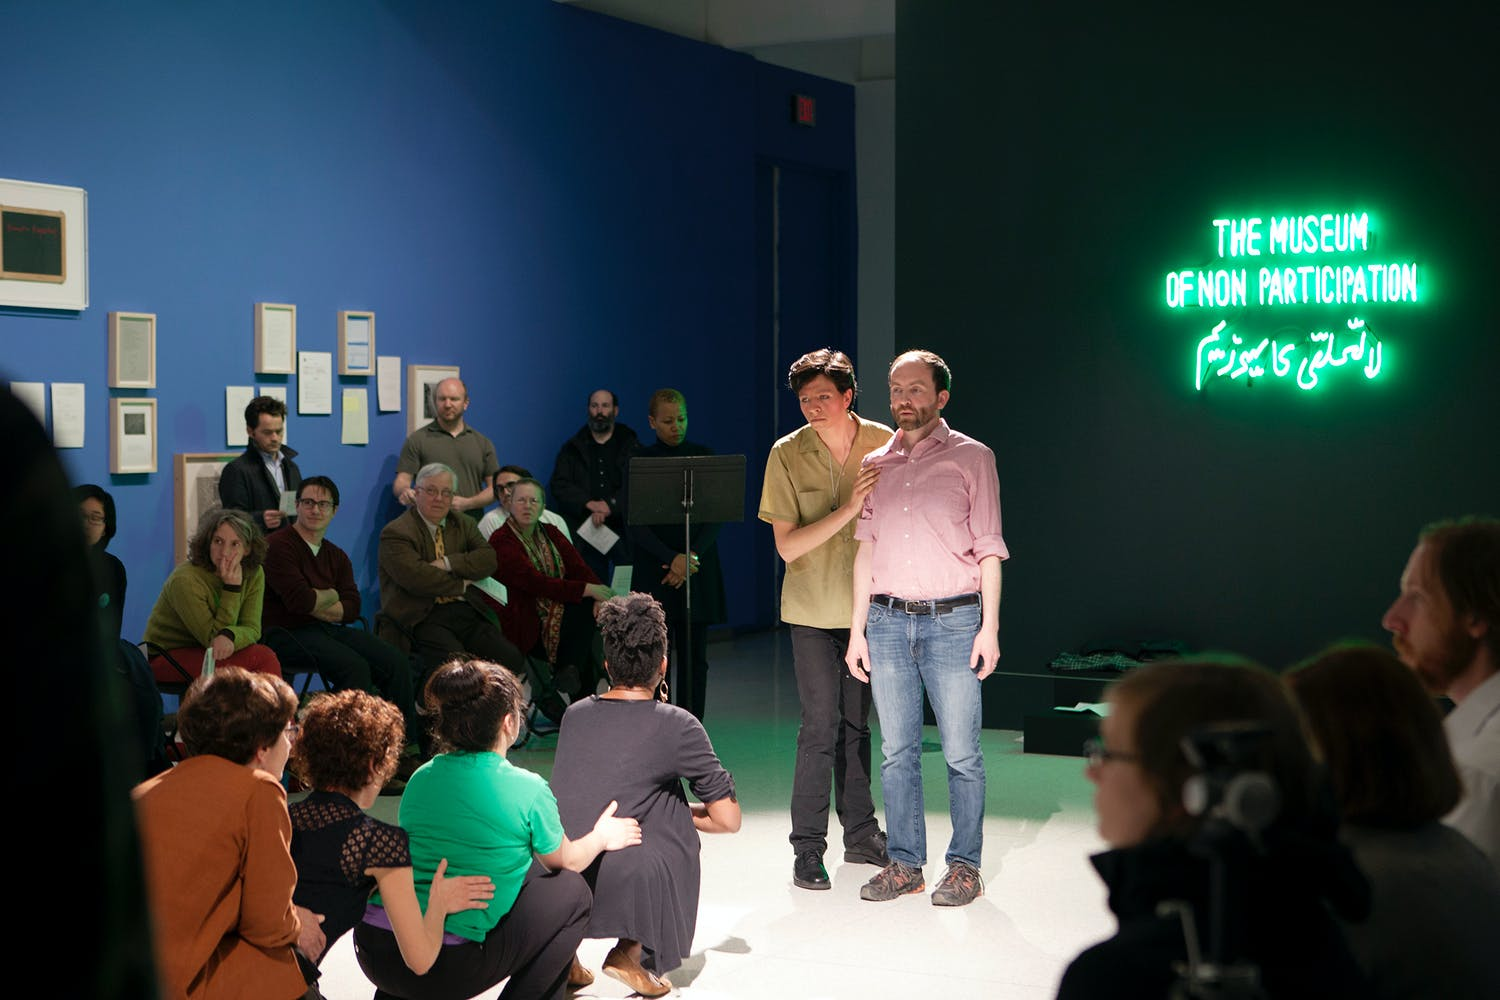 Opening of the exhibition, The Museum of Non Participation, 2013